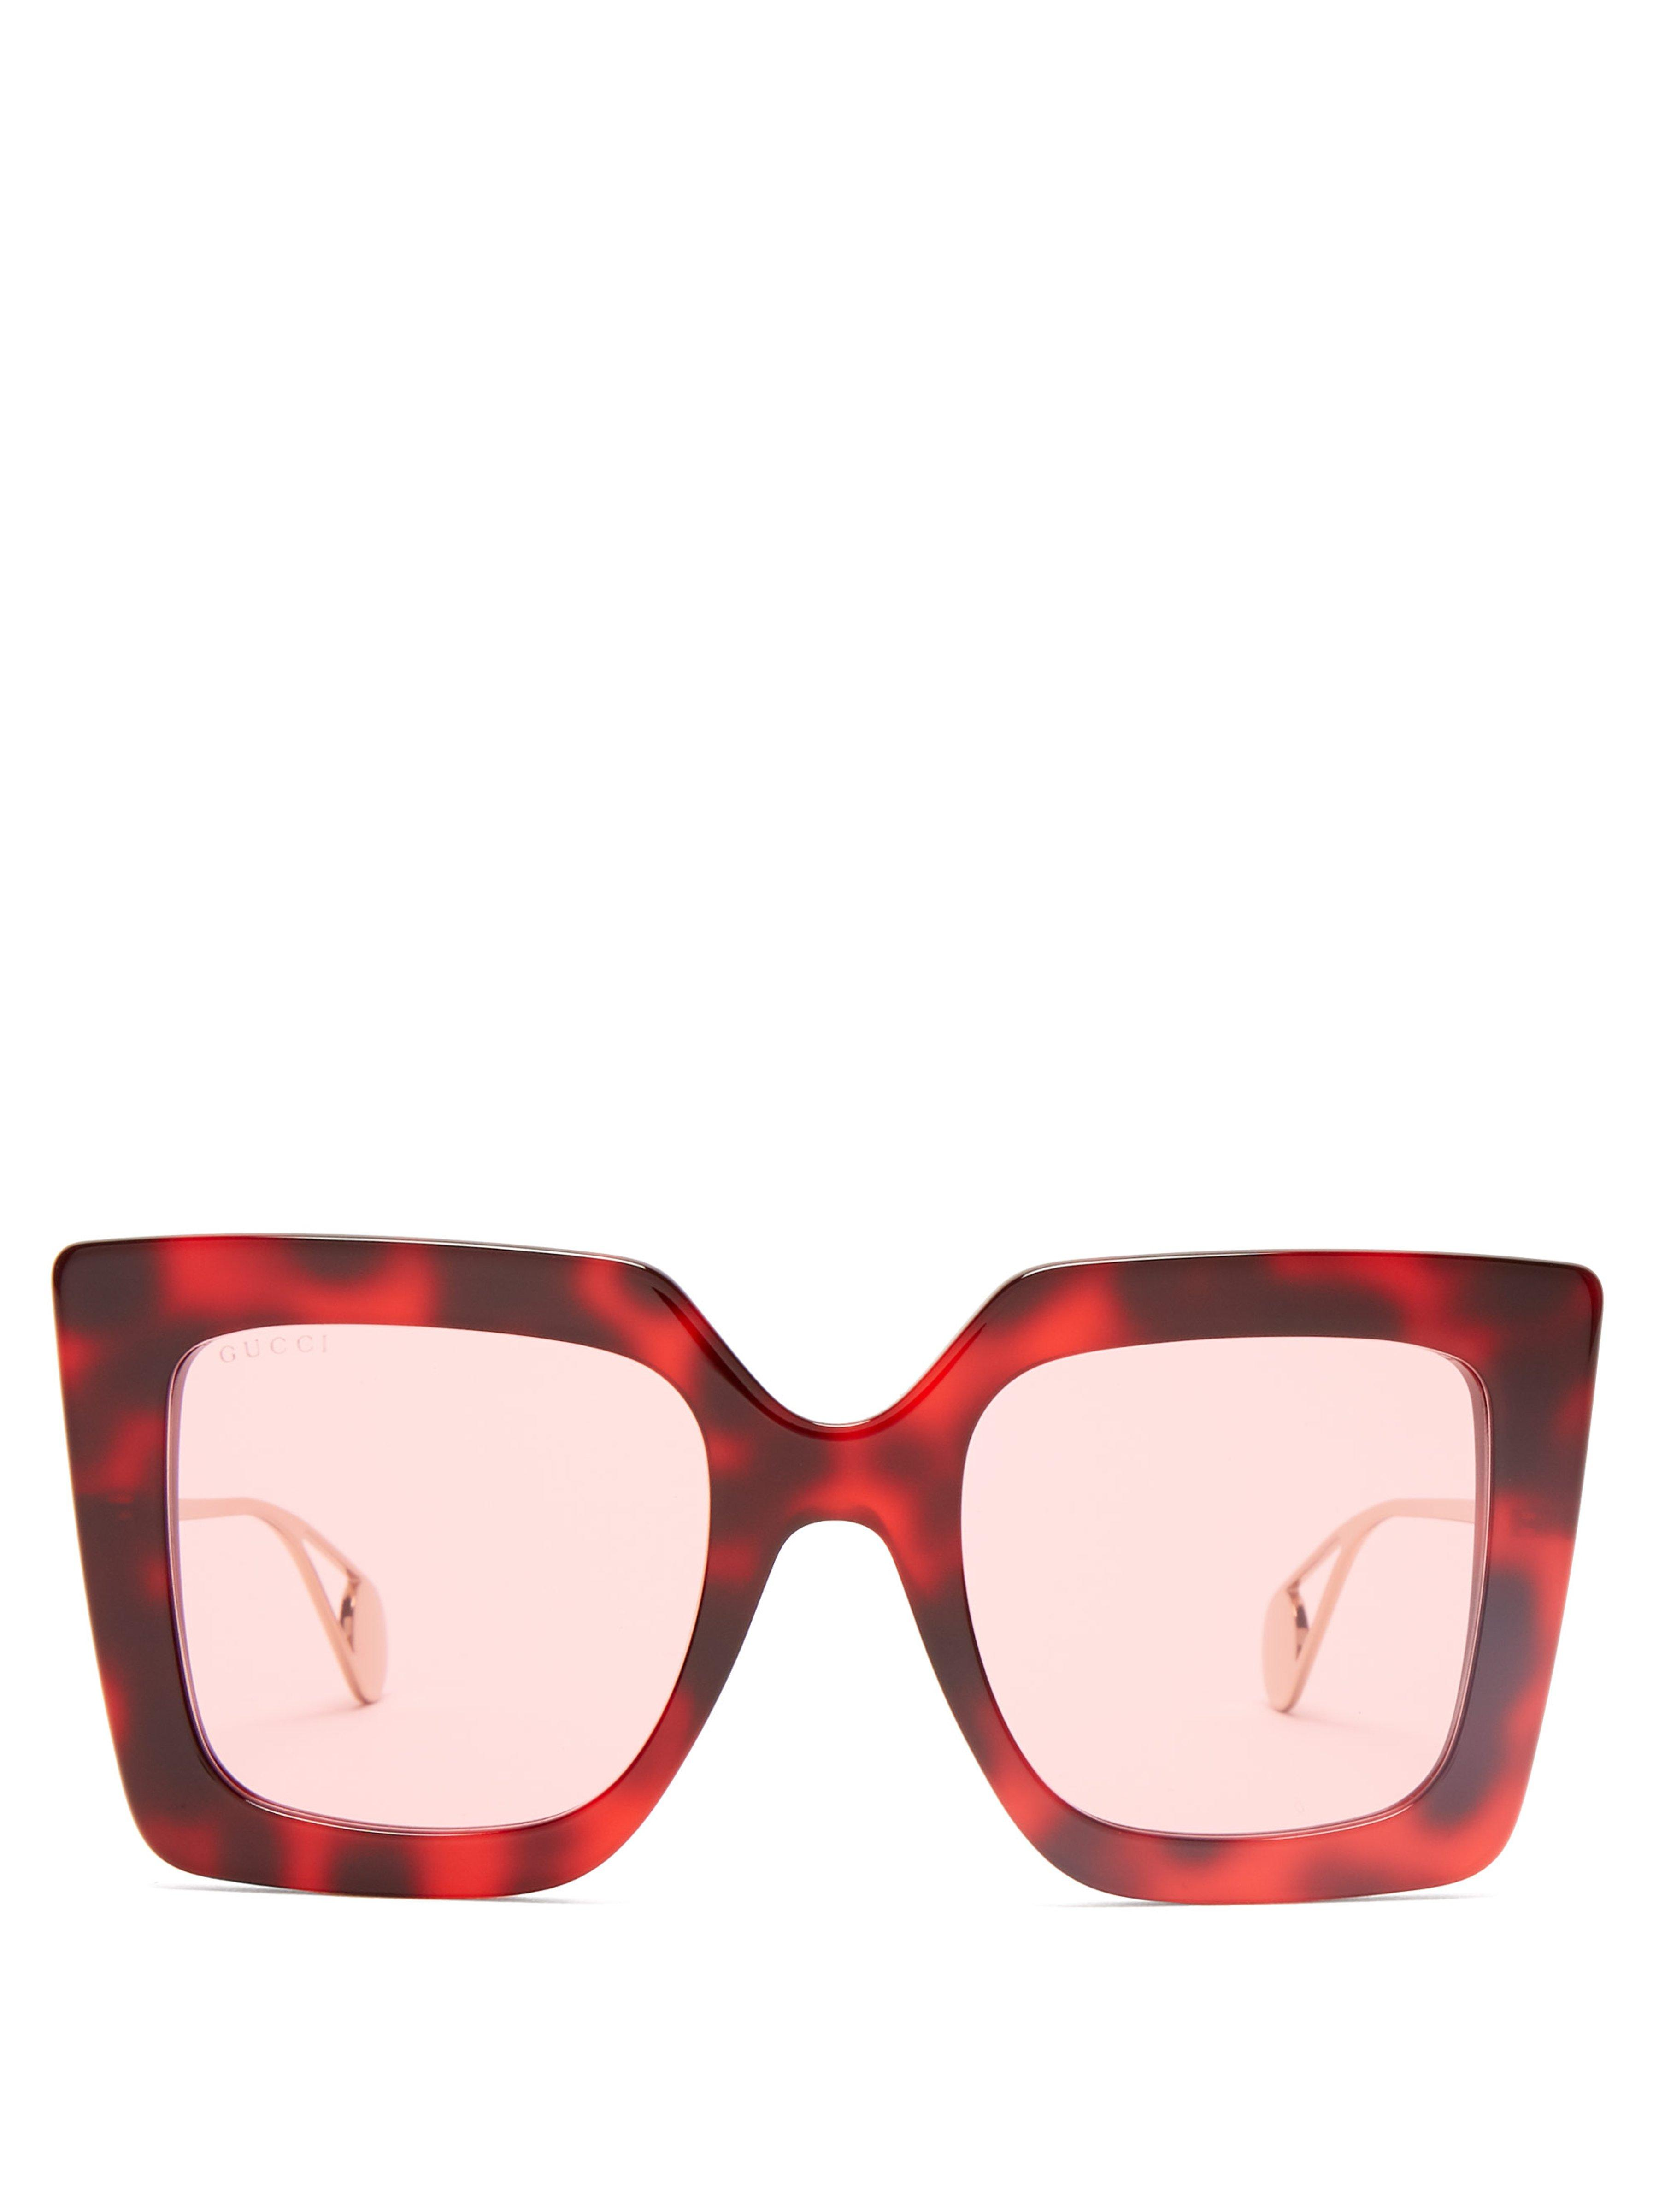 21af7914a7 Gucci Oversized Square Frame Acetate Sunglasses in Red - Lyst